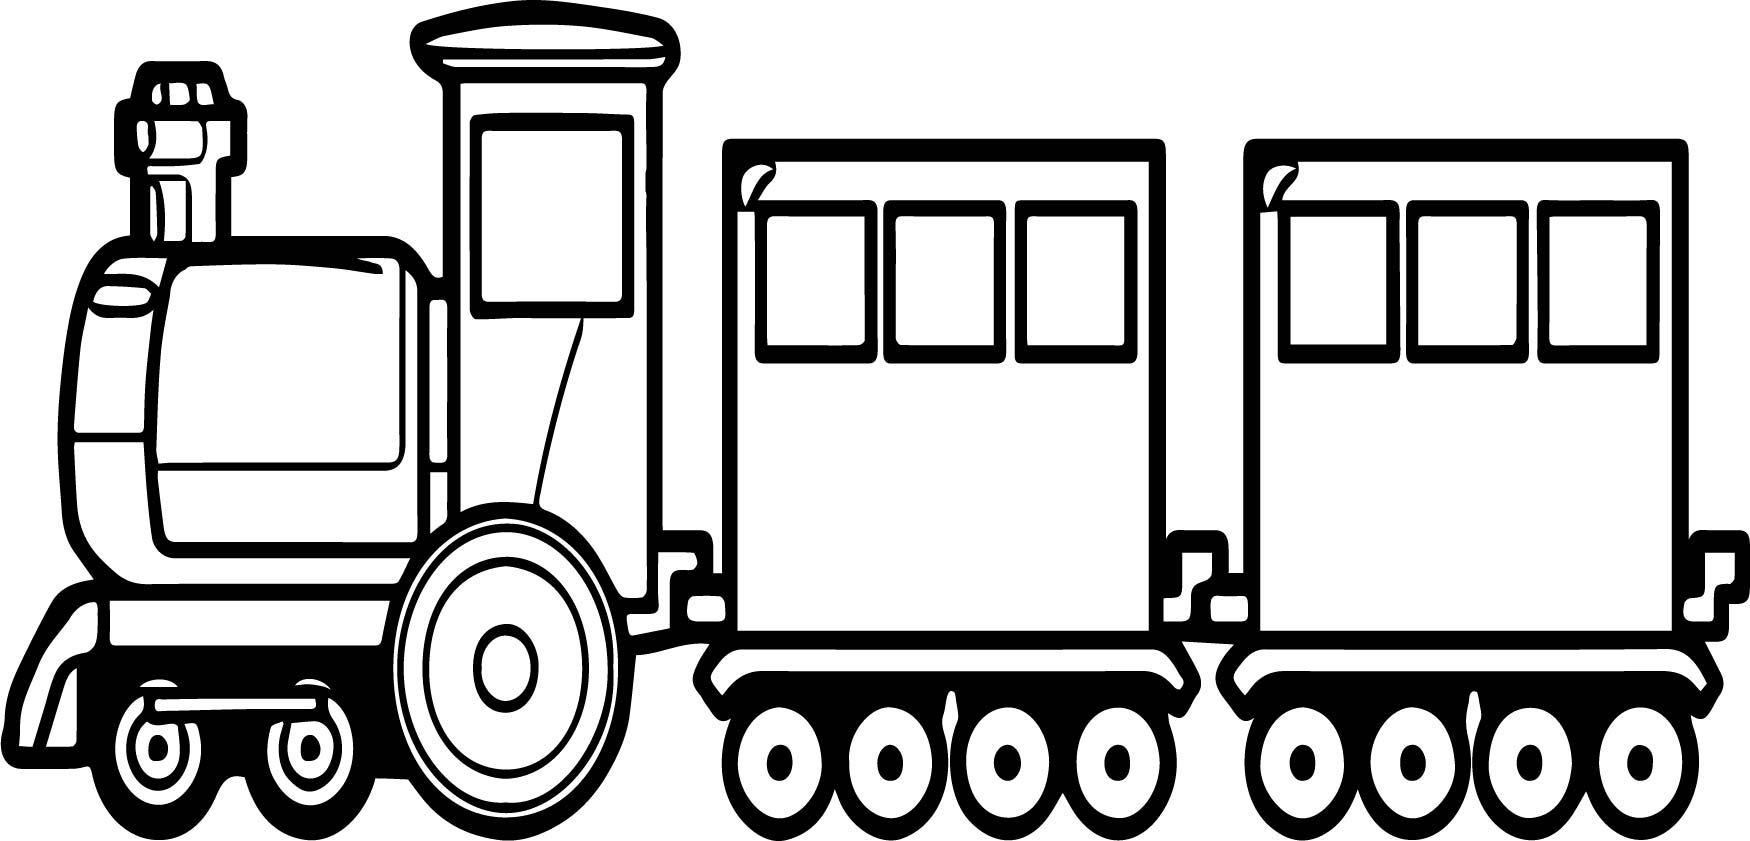 Train boxcar coloring pages - Go Train Coloring Page Wecoloringpage